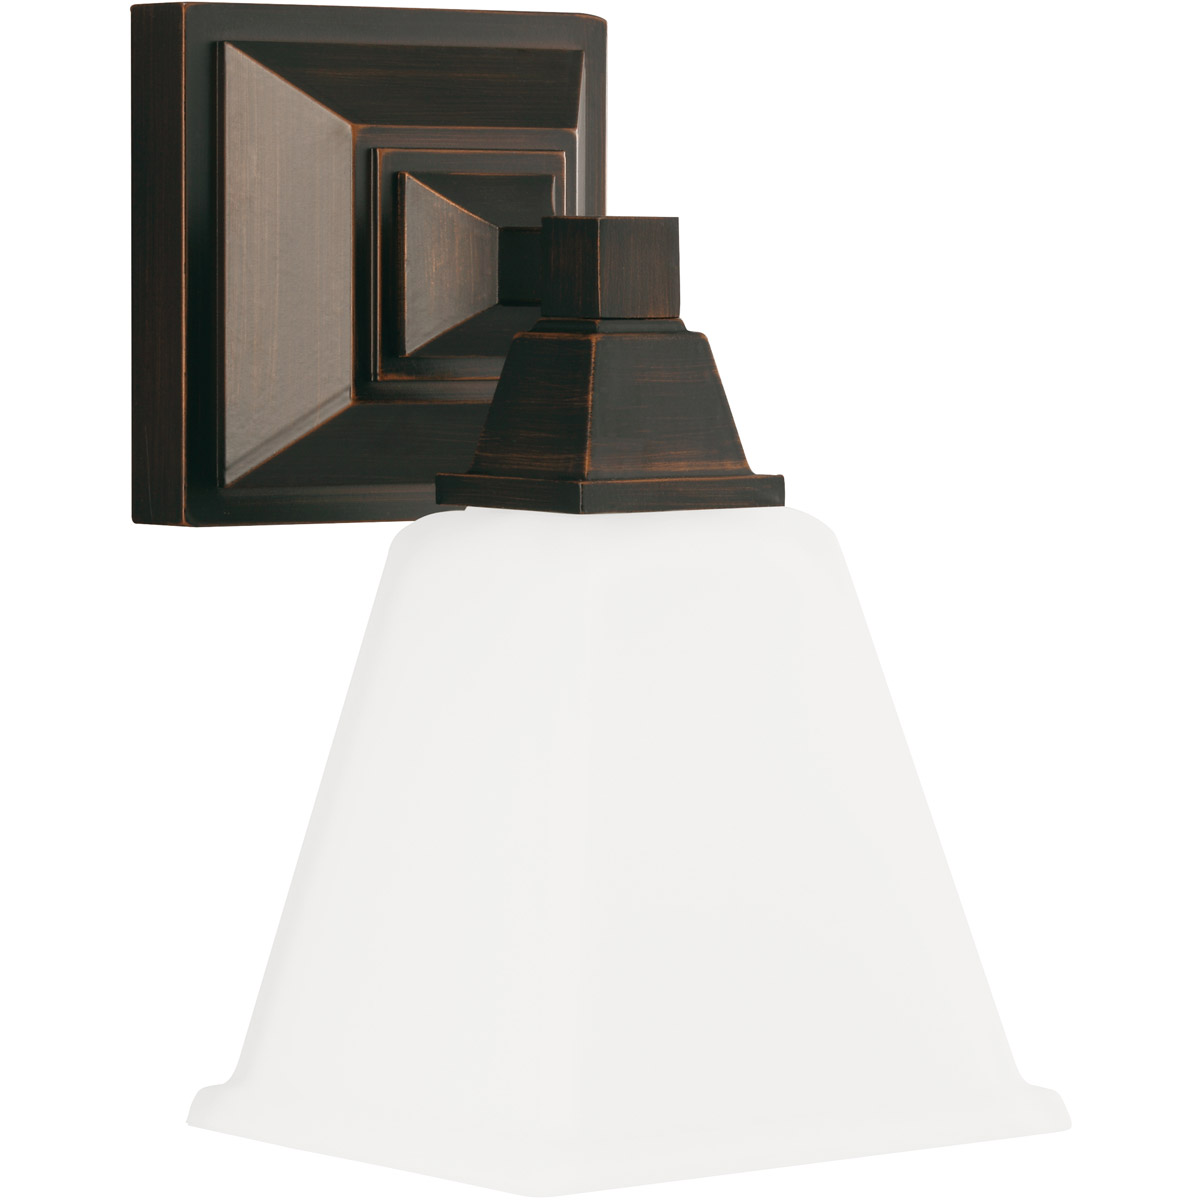 Sea Gull Denhelm 1 Light Bath Sconce in Burnt Sienna 4150401BLE-710